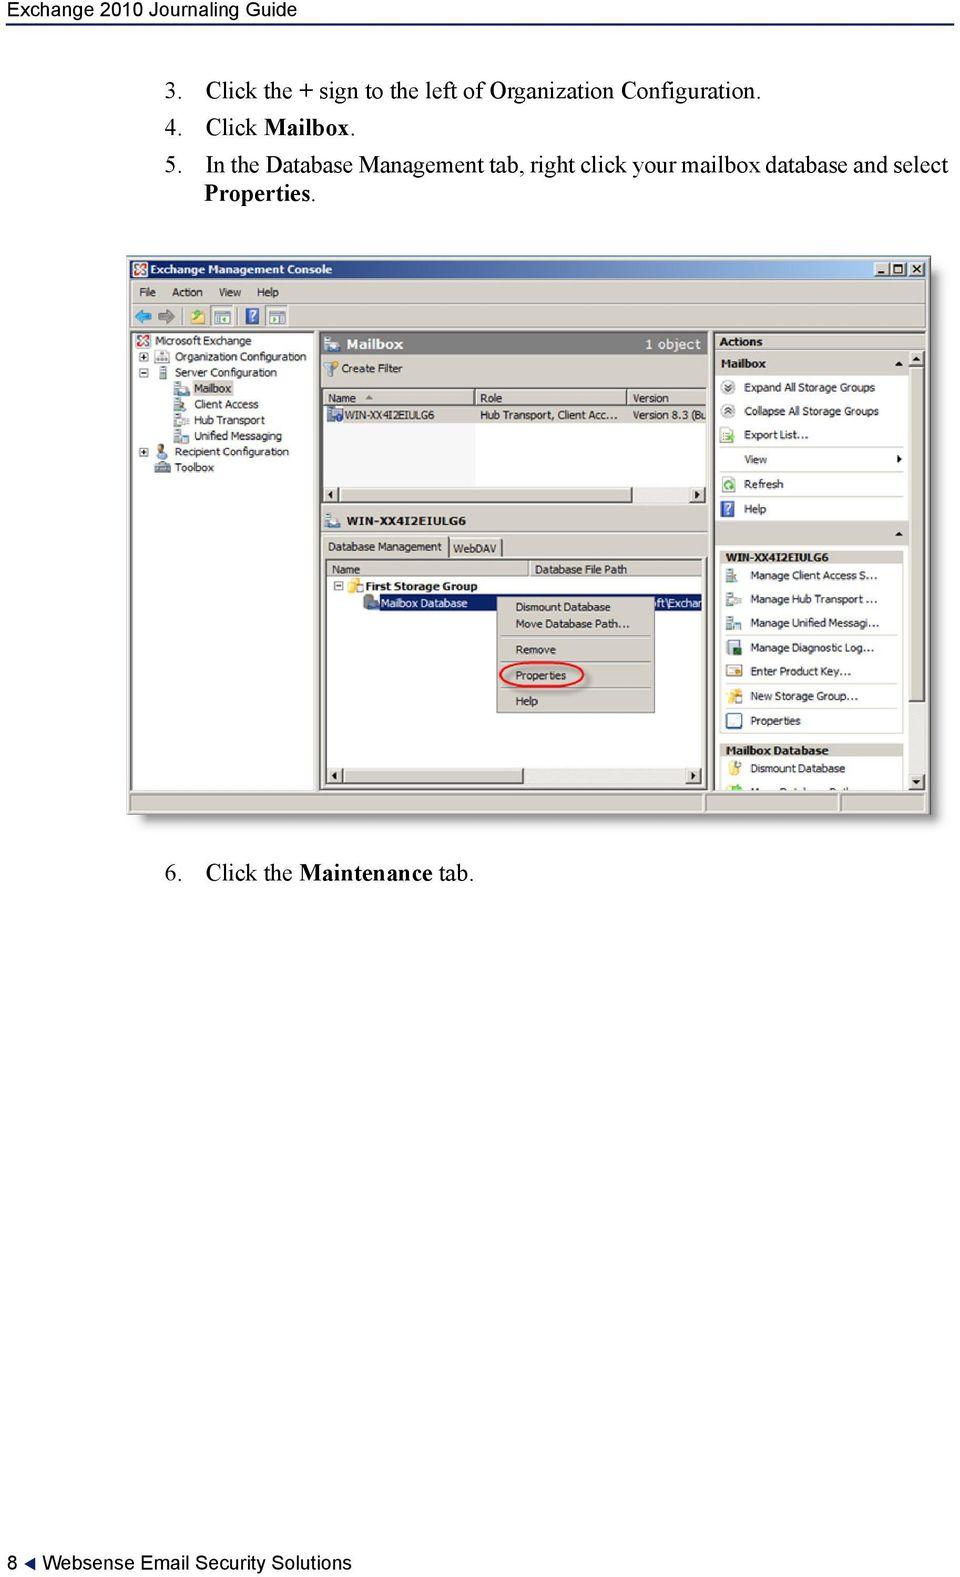 In the Database Management tab, right click your mailbox